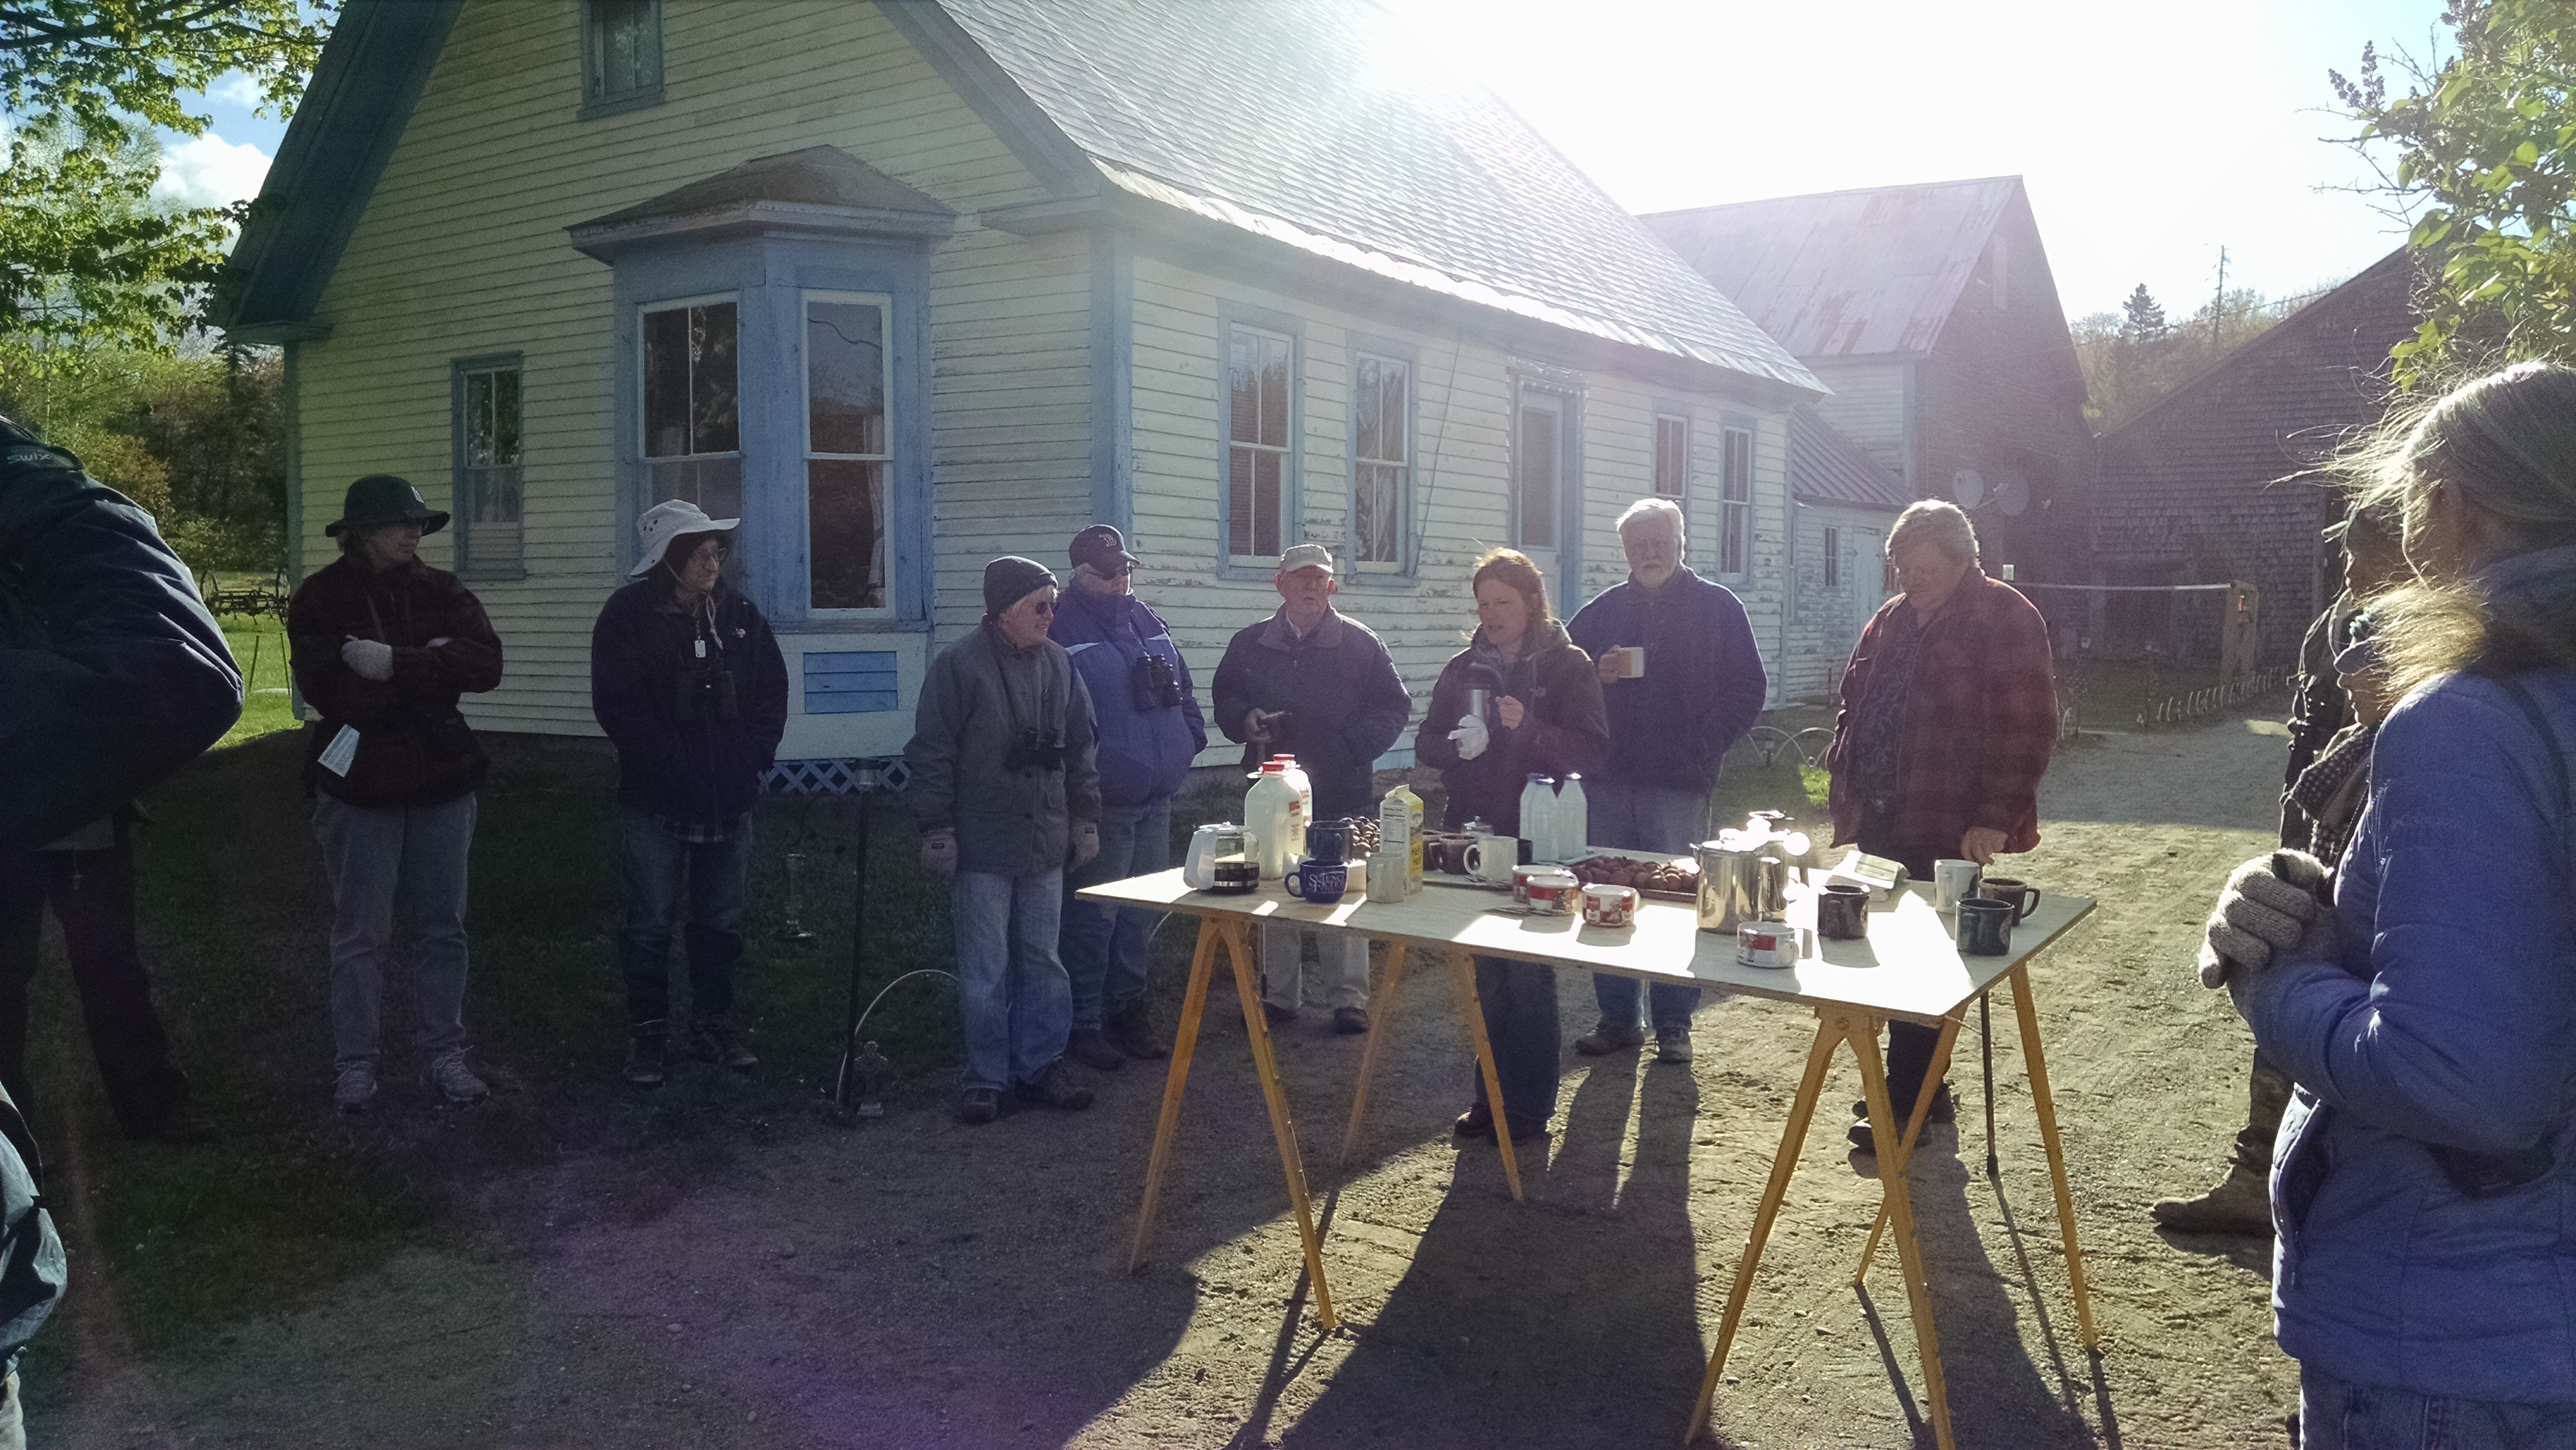 The group gathers at Carson Hinkley's house. Carson maintains the trail which is on his property.